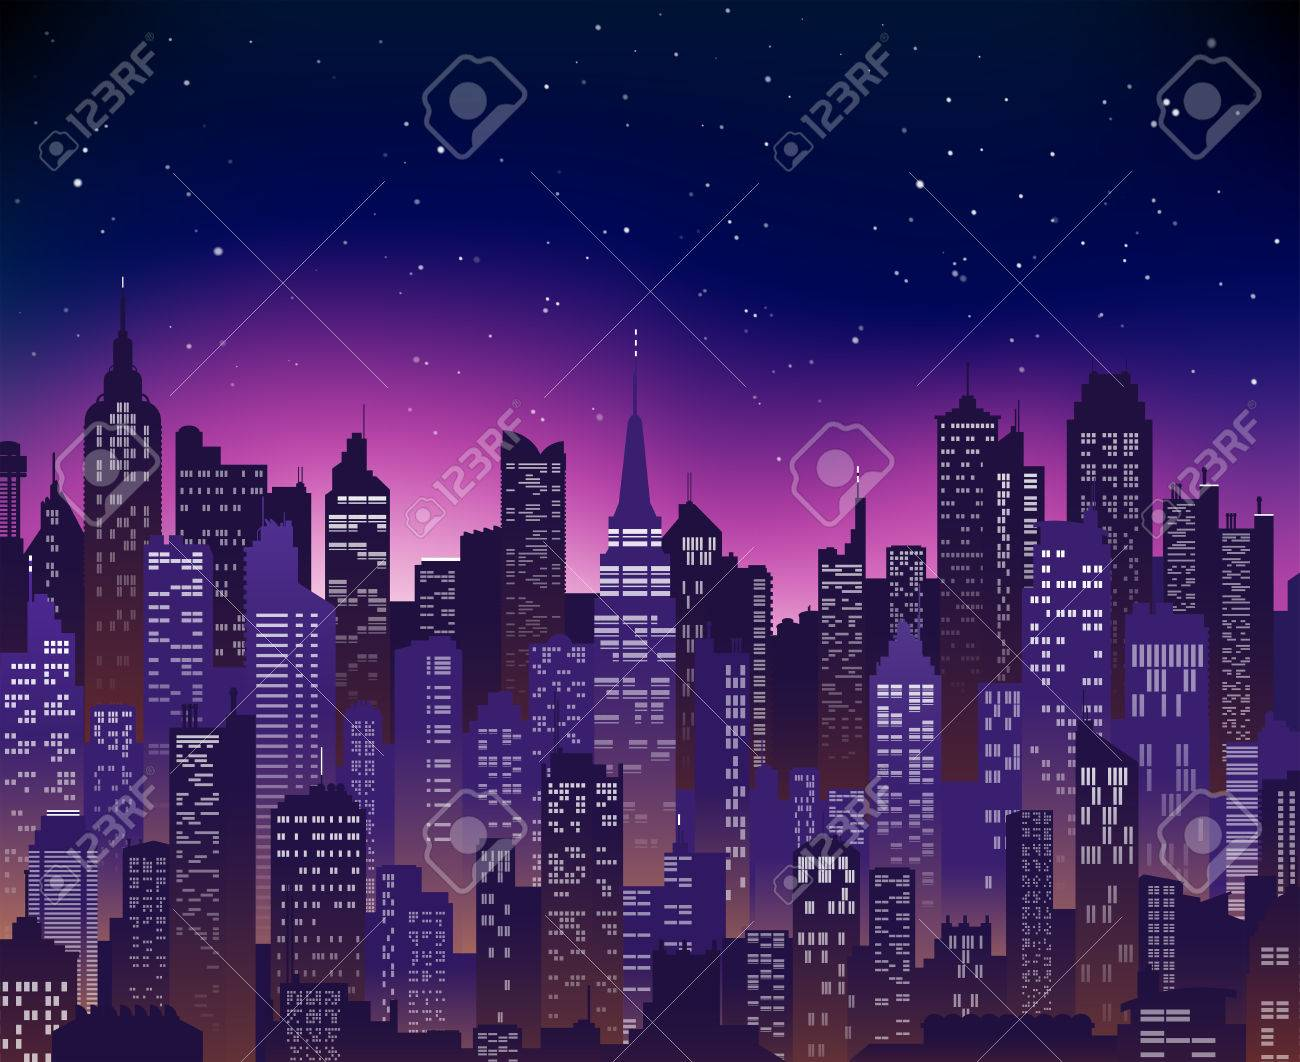 blue purple high detail background of a city sunset view composed of lots of illustrations